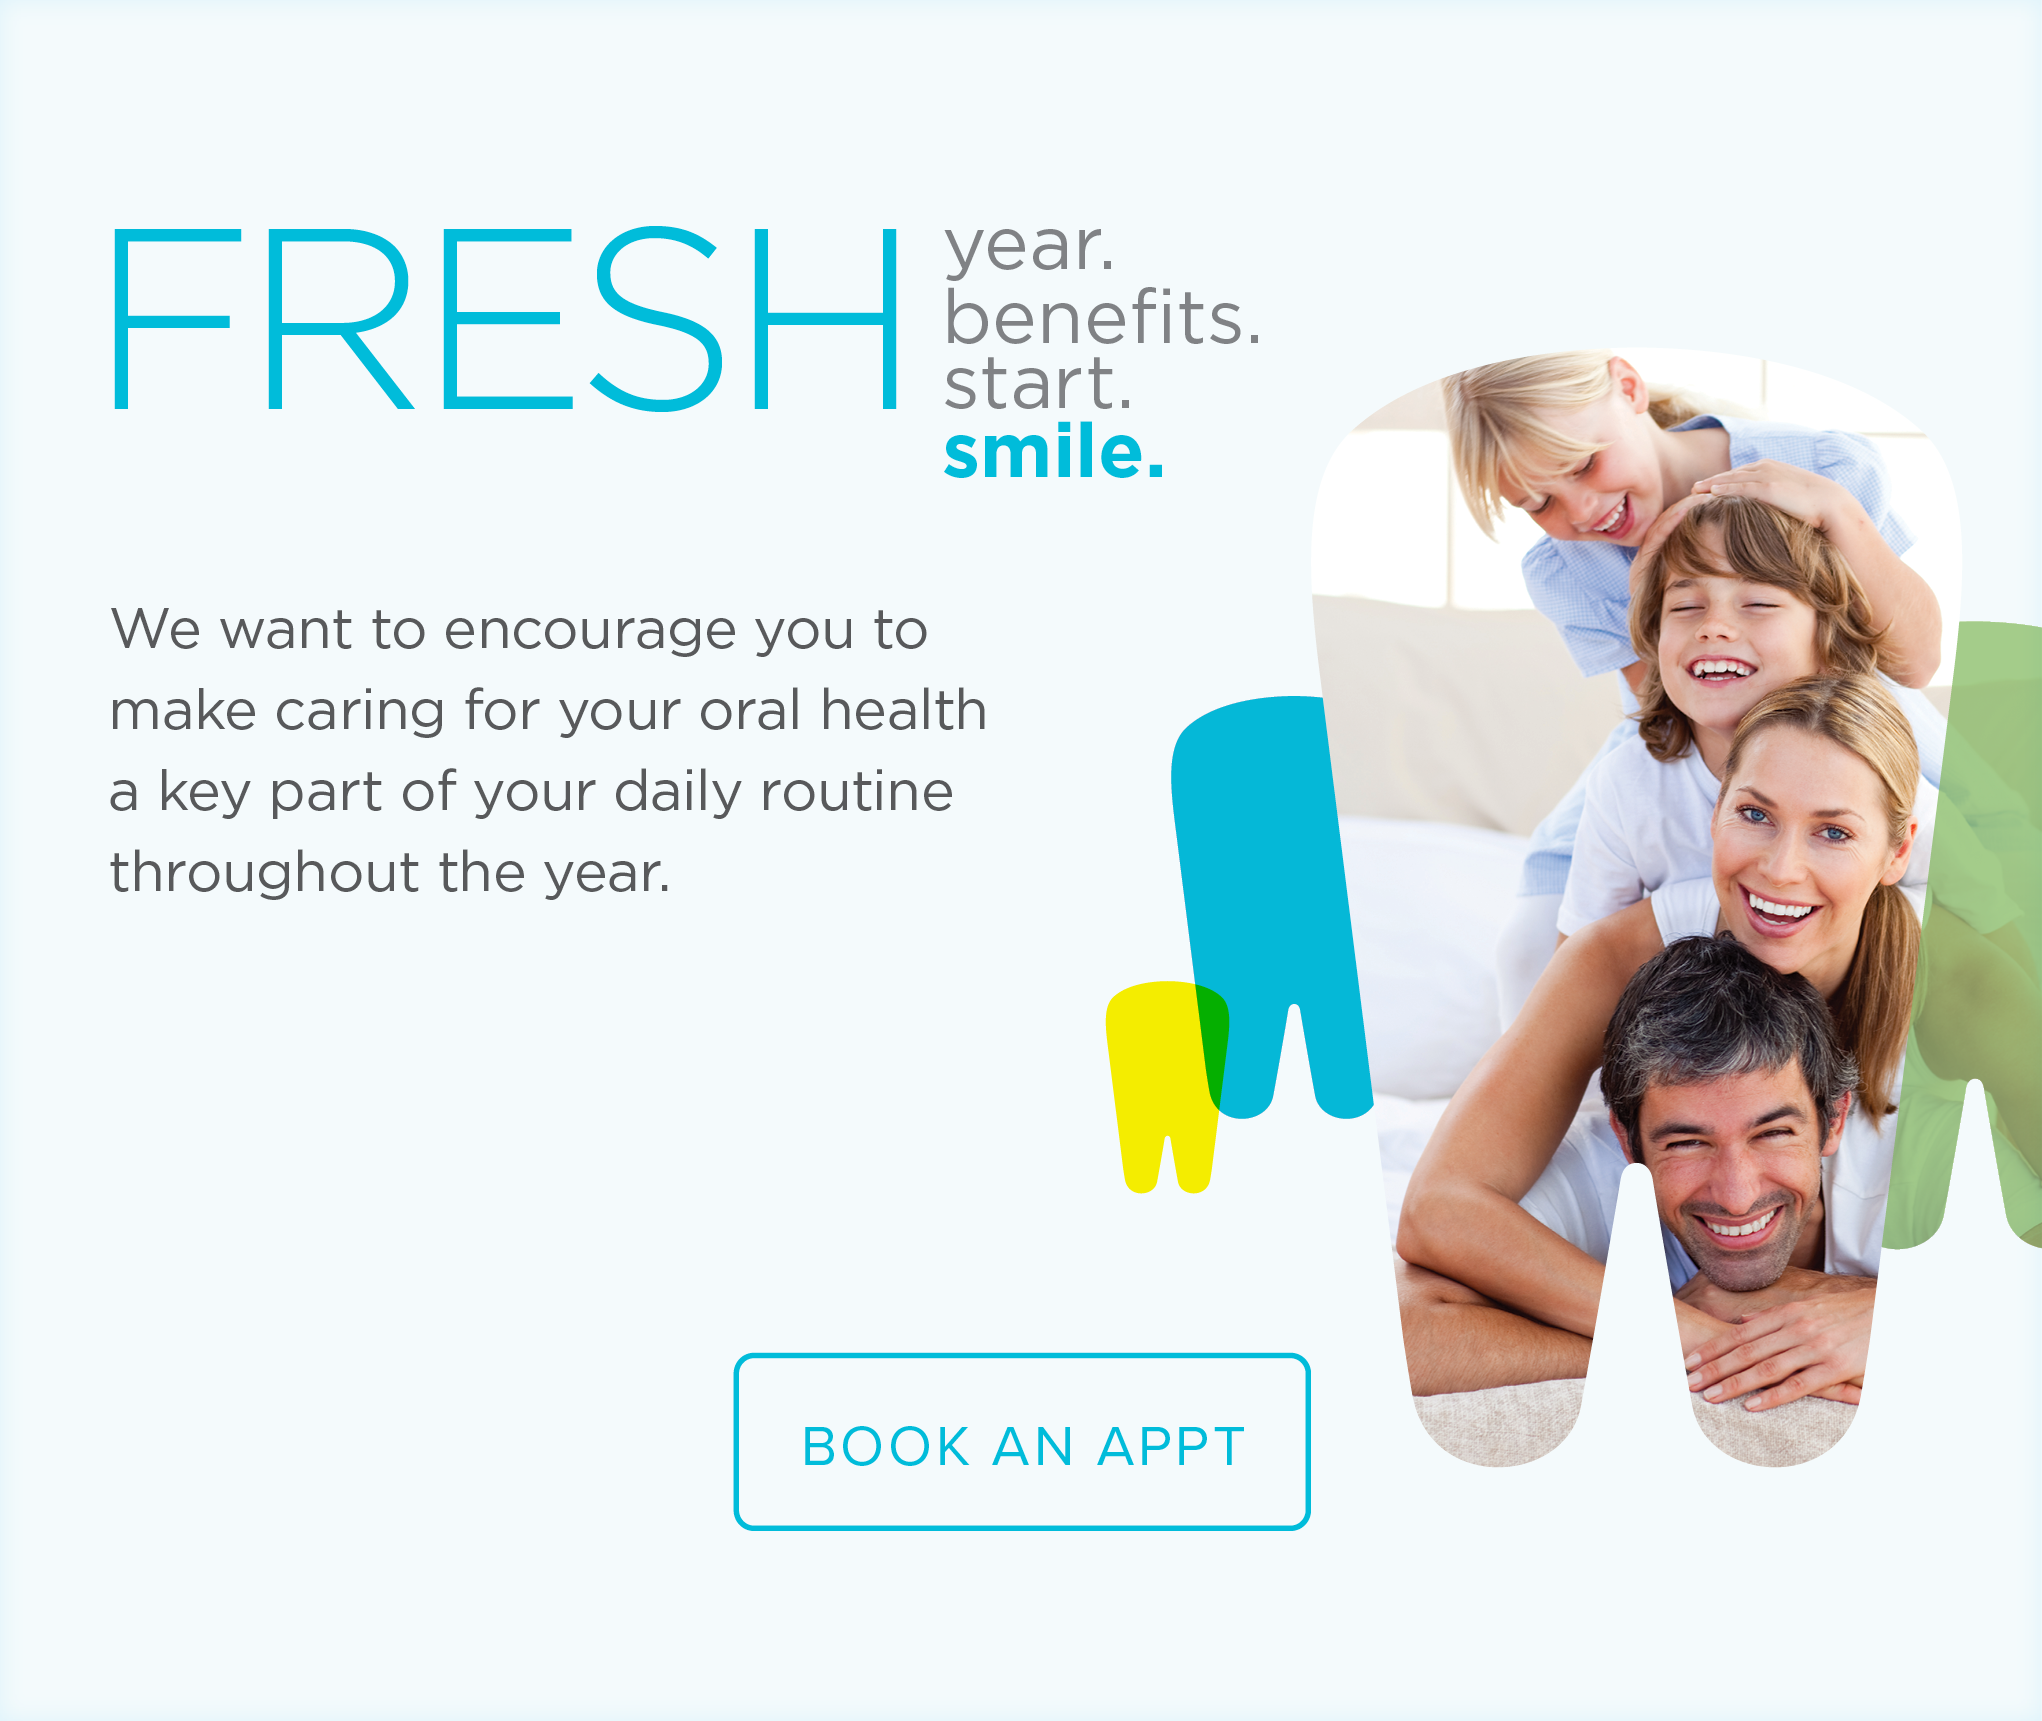 Vancouver Dentist Office - Make the Most of Your Benefits